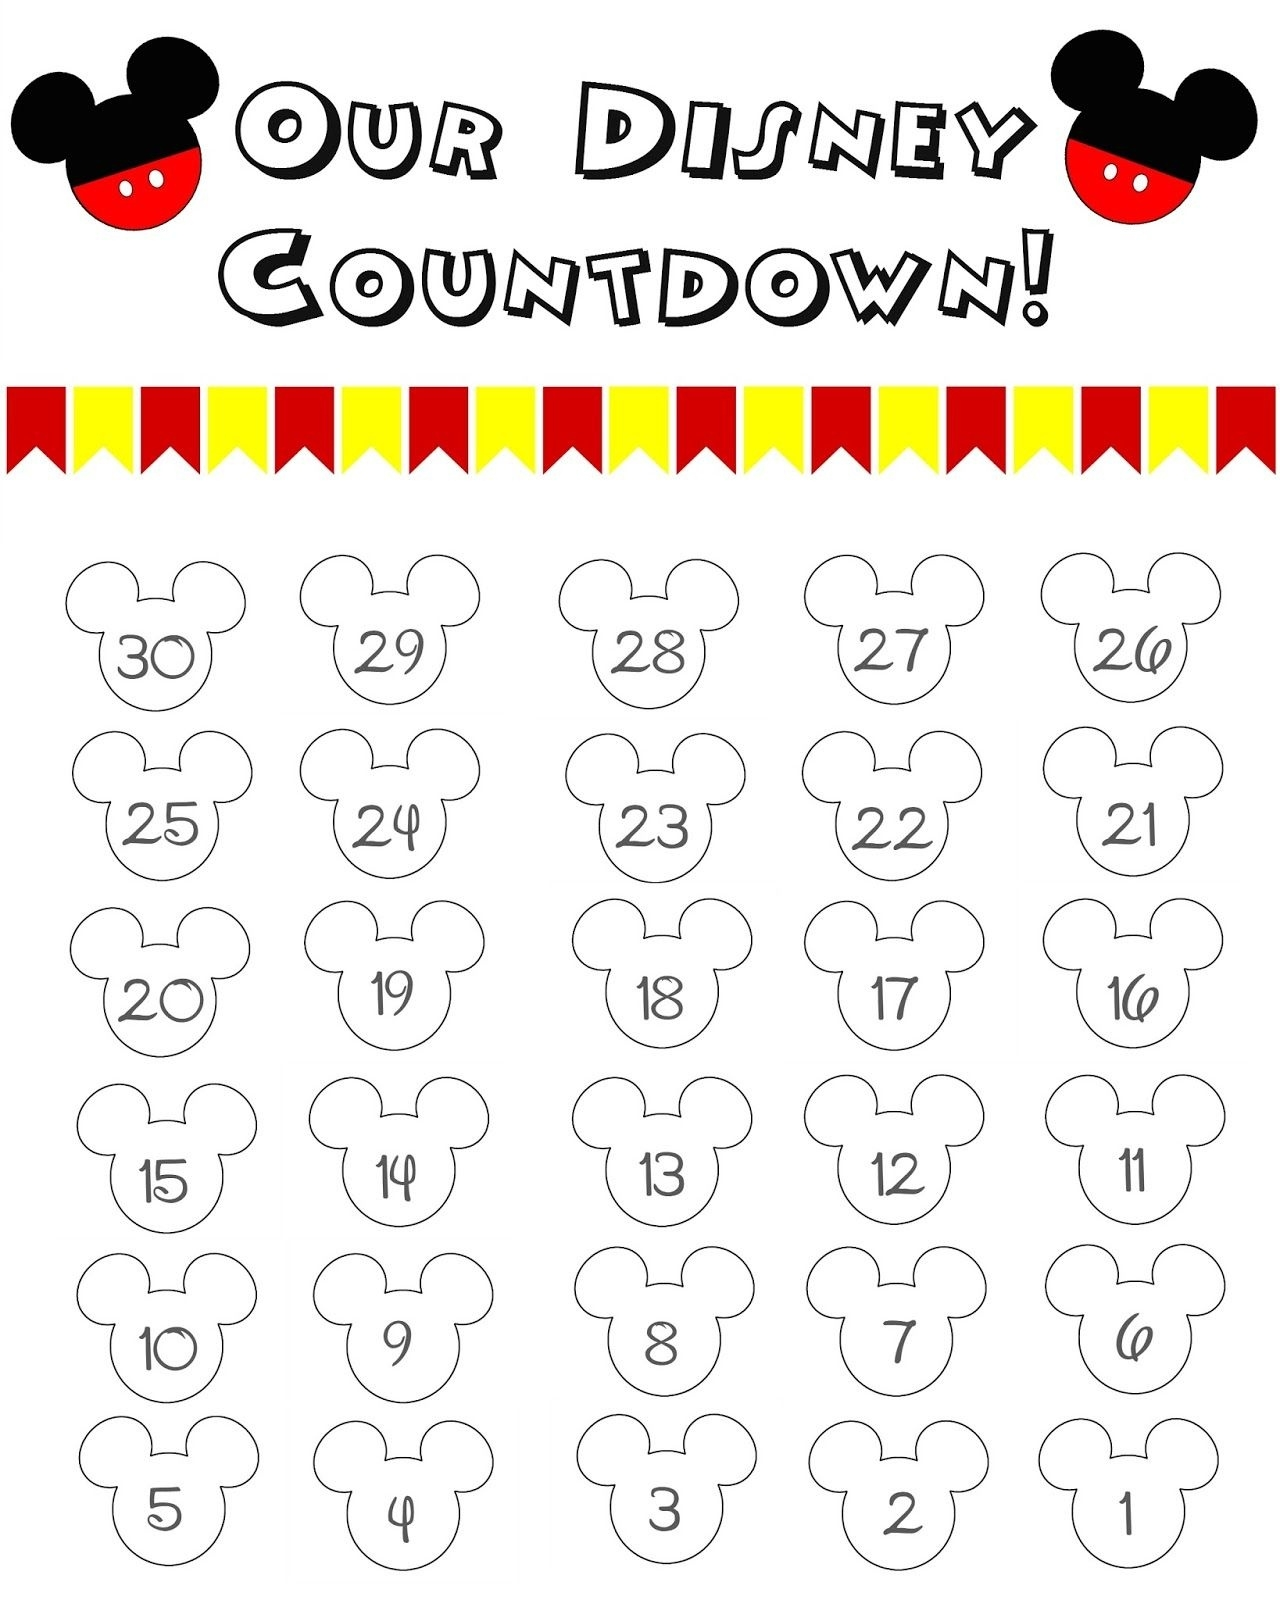 Disney World Countdown Calendar - Free Printable  </p>   </div>        <br>     <div class=